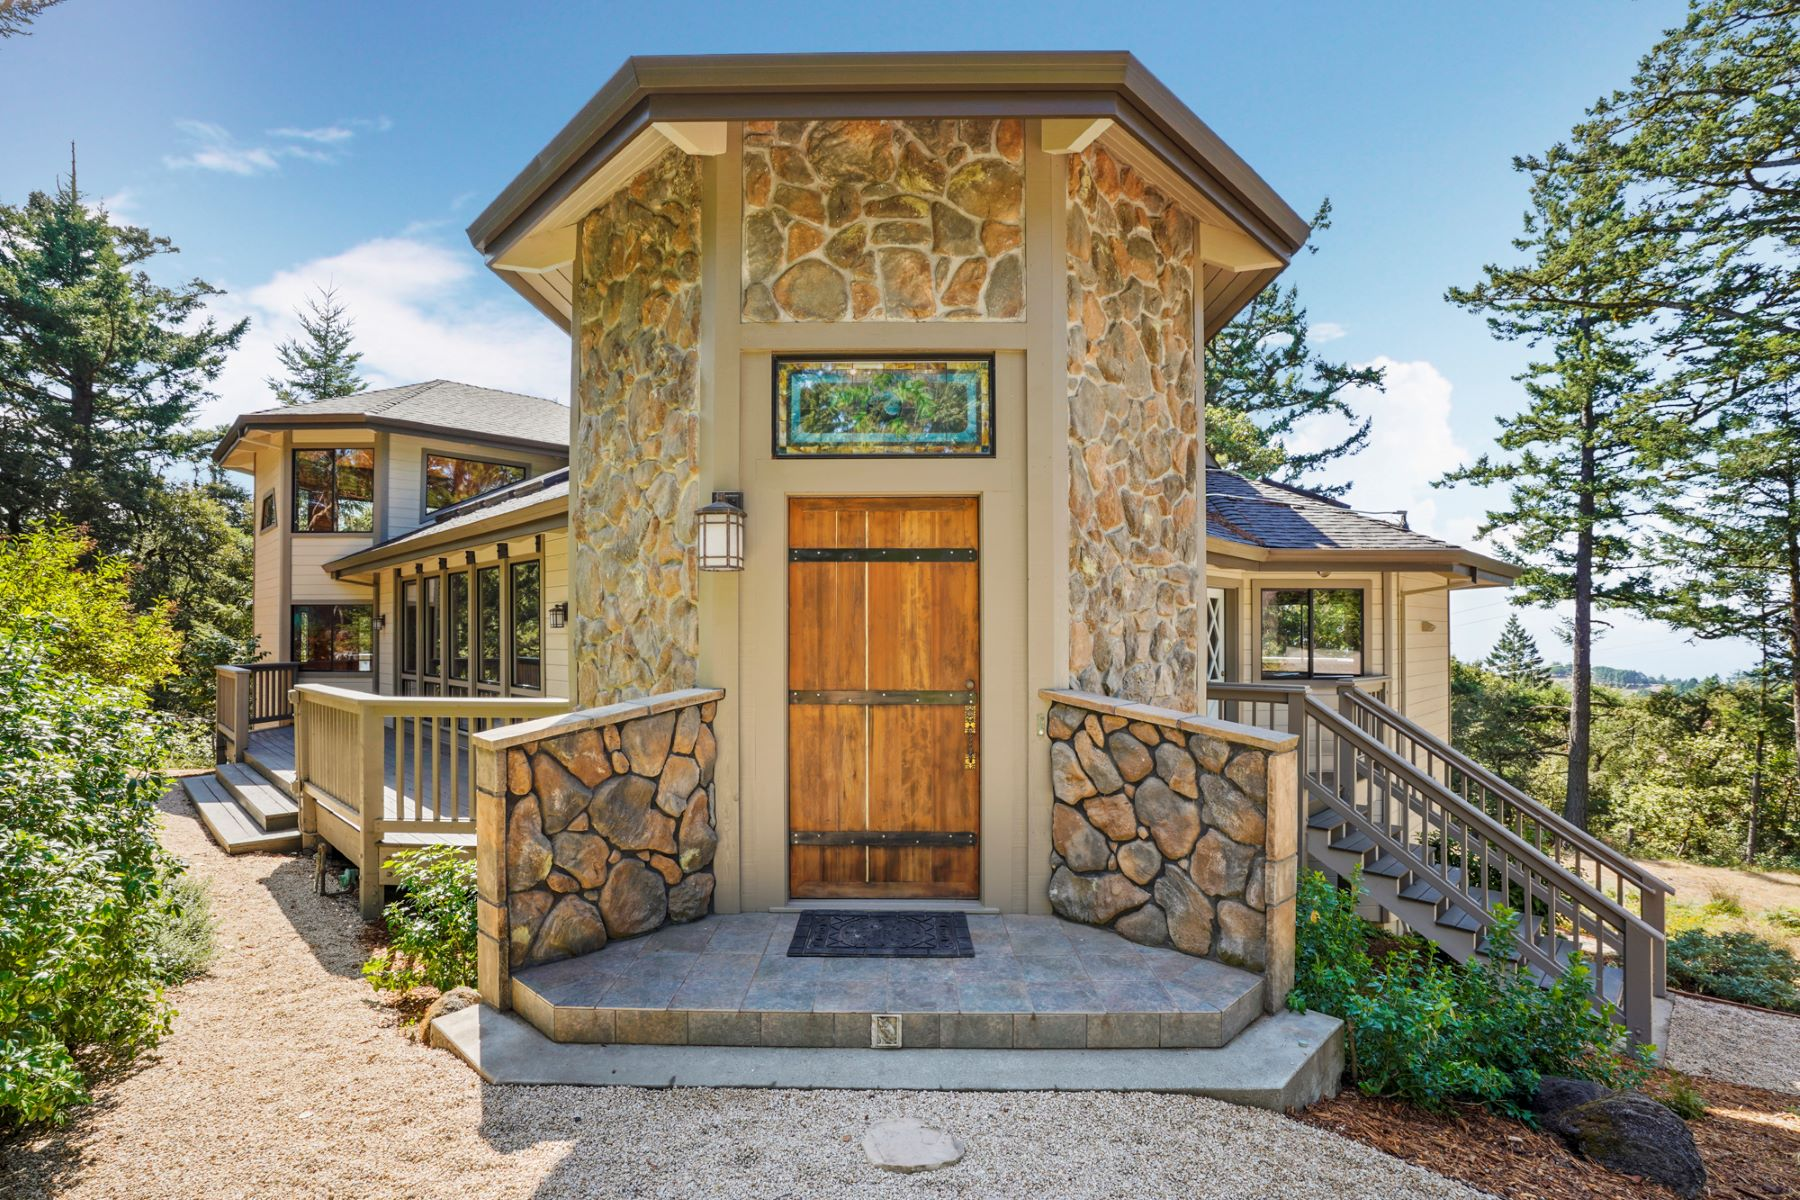 Single Family Homes for Sale at Magnificent Home in Tranquil Mountain Location 410 Allen Road Woodside, California 94062 United States